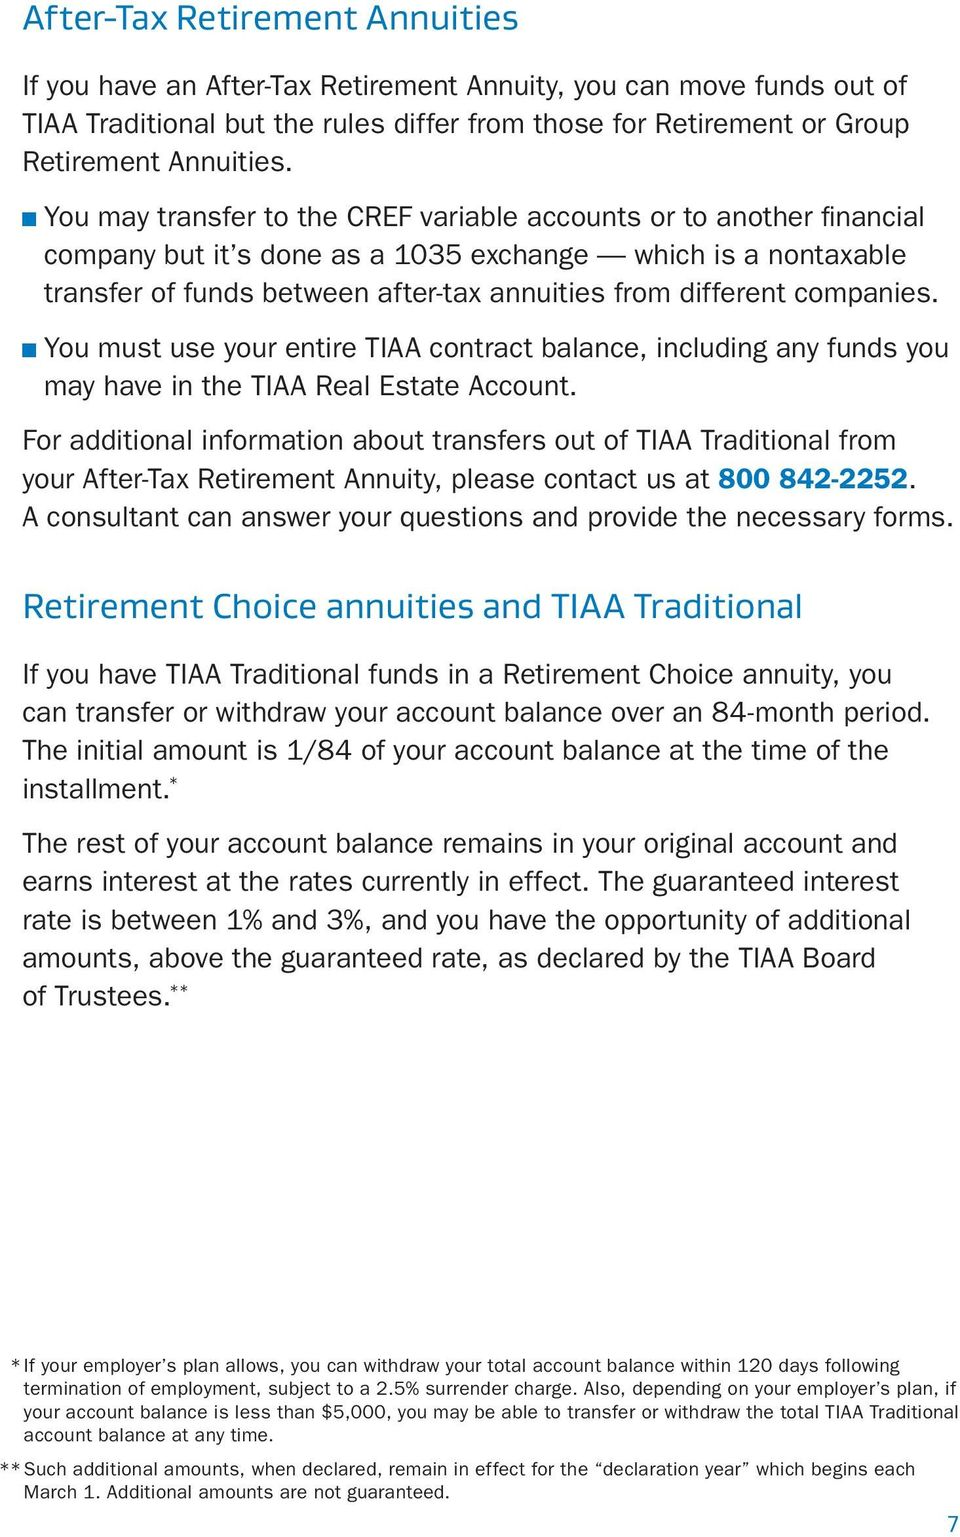 companies. You must use your entire TIAA contract balance, including any funds you may have in the TIAA Real Estate Account.